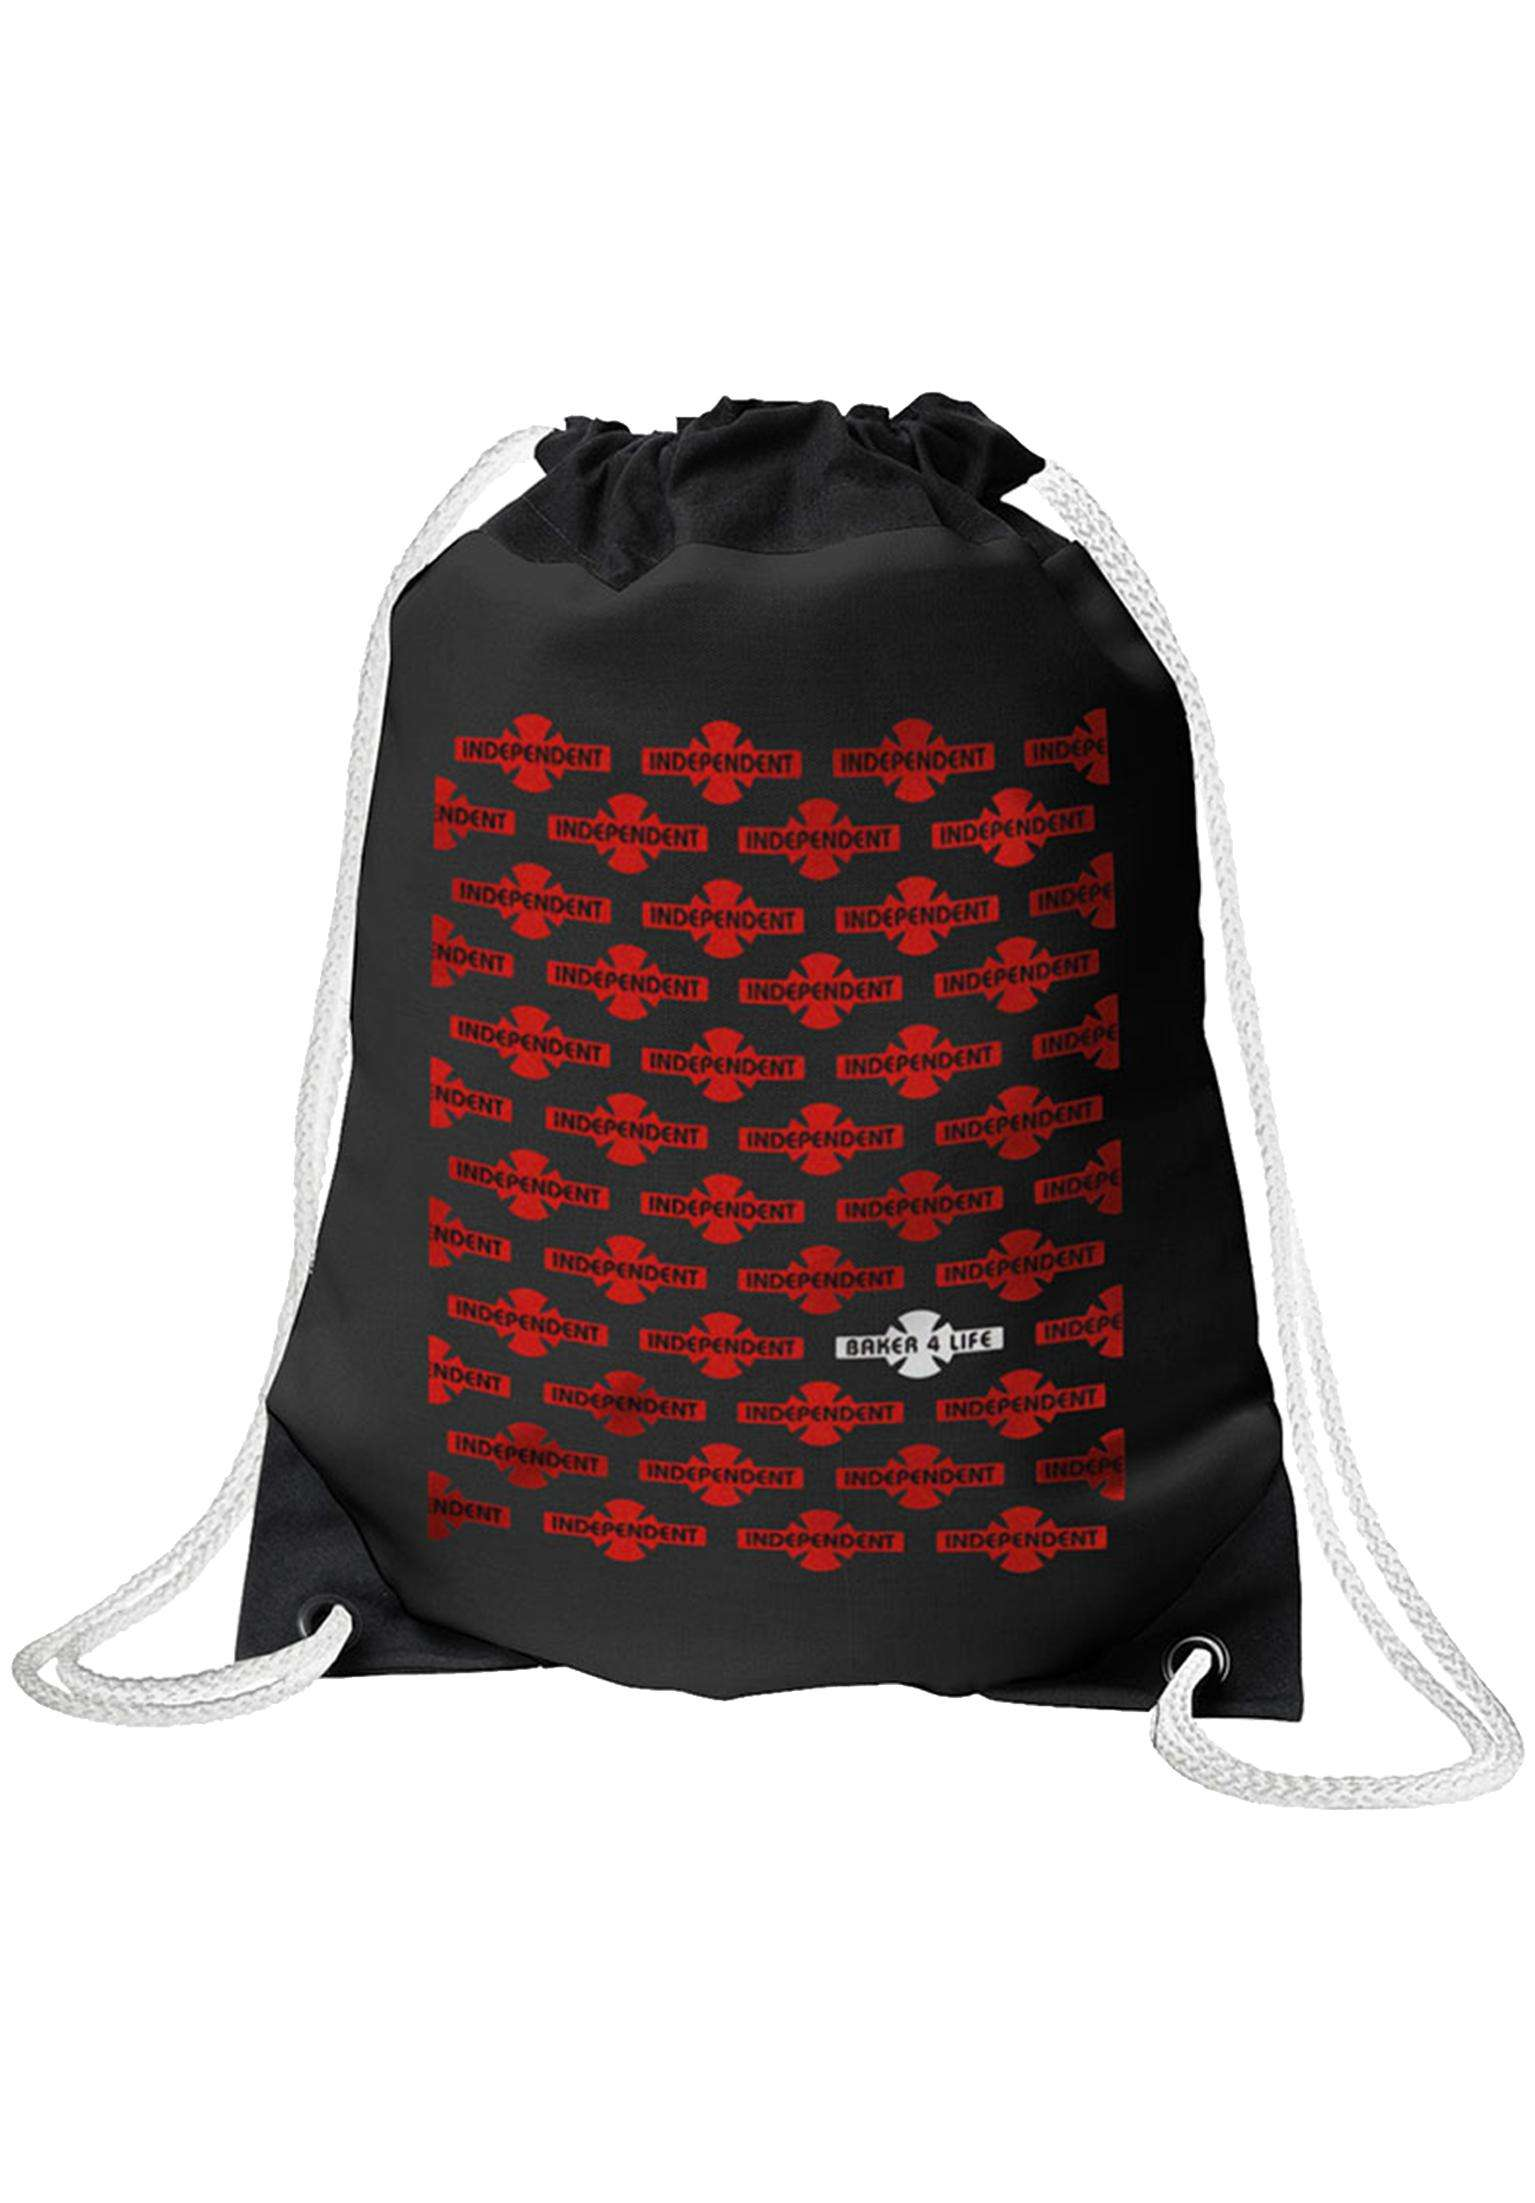 Independent batoh Baker 4 Life Cinch Sack Black